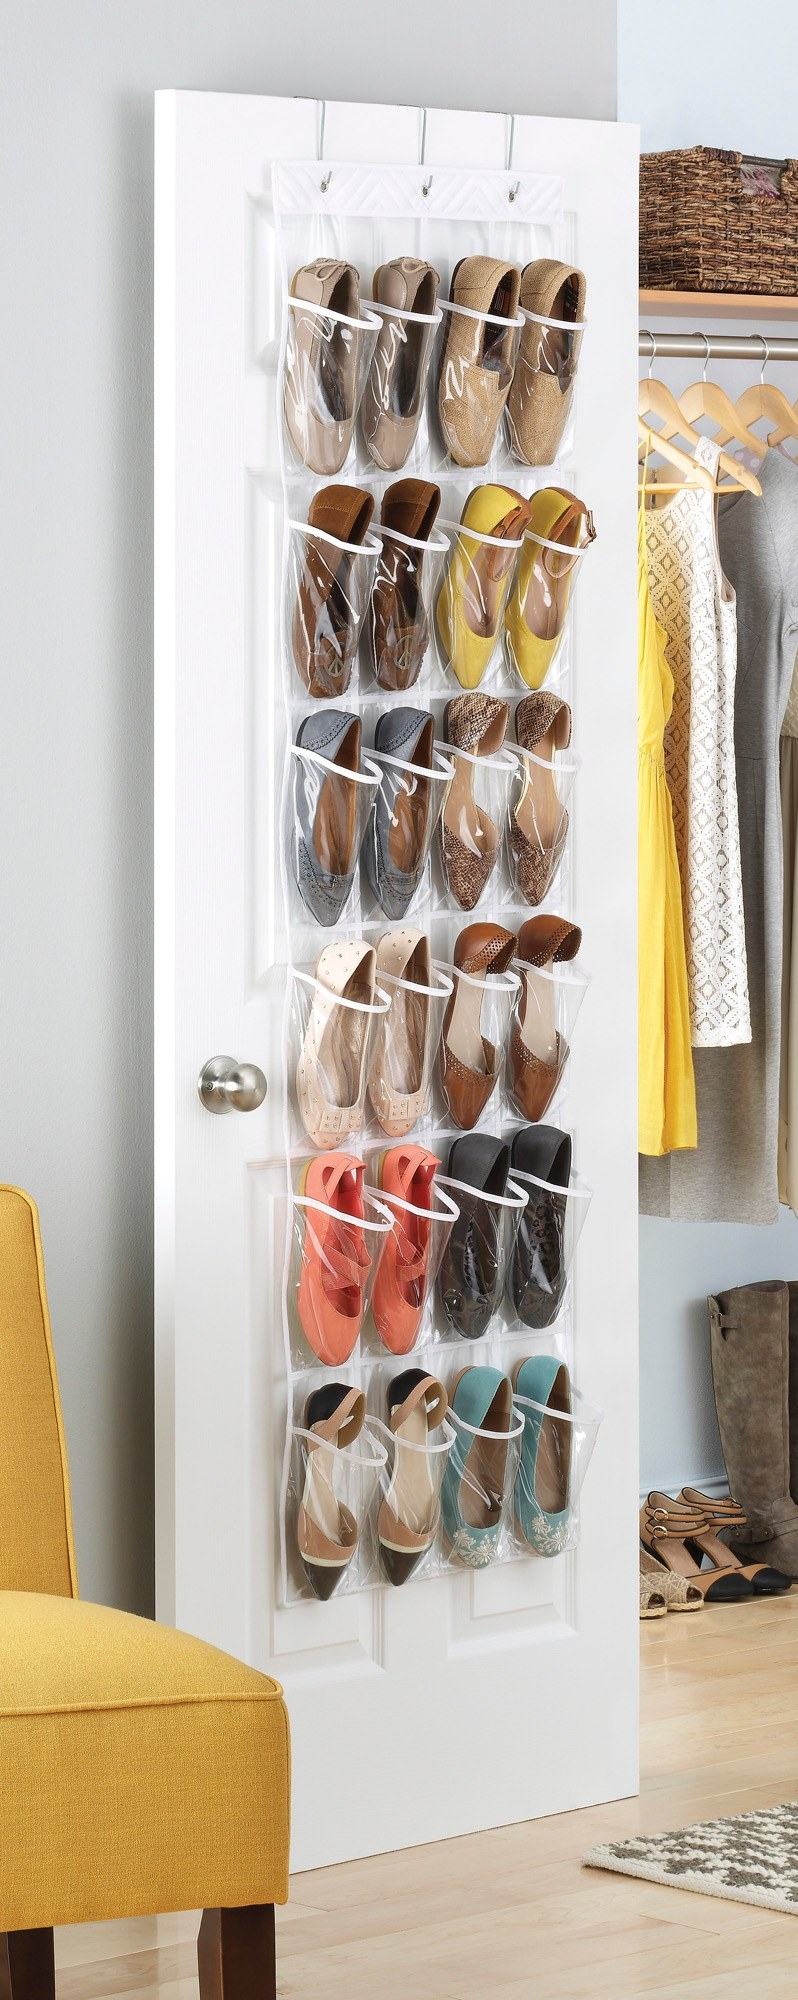 The shoe organizer hanging over a closet door, filled with 12 pairs of shoes